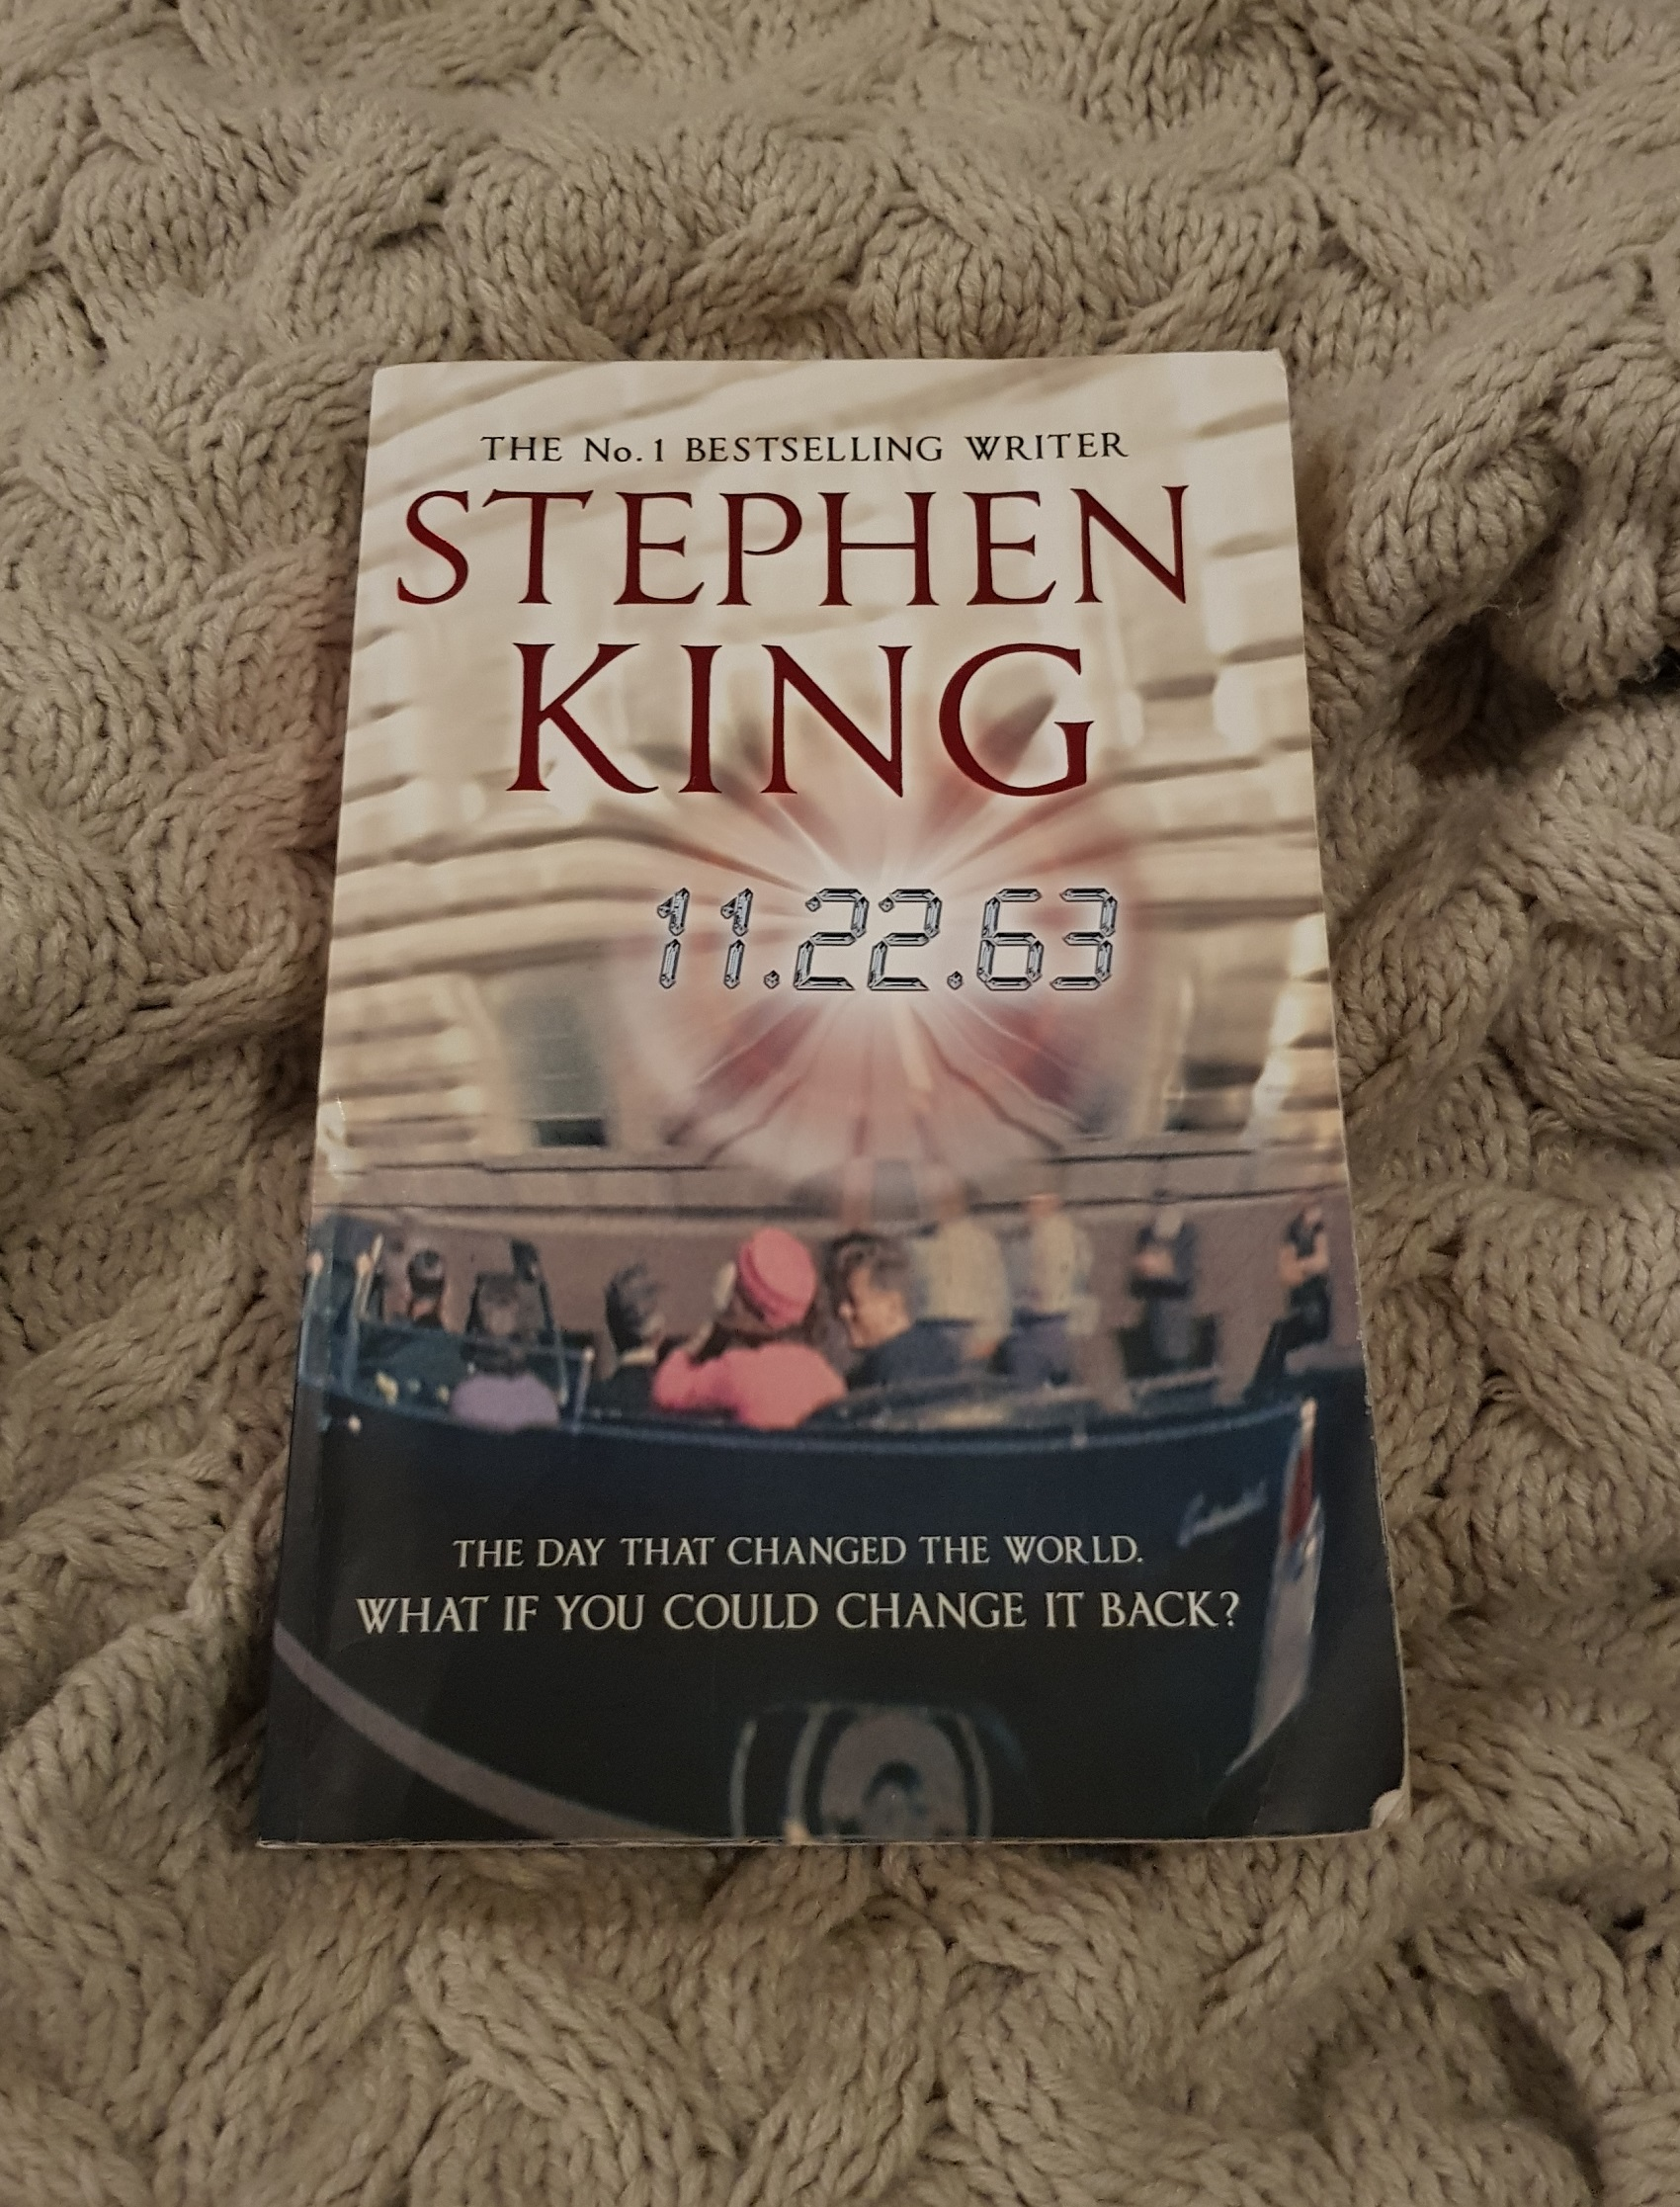 Buddy Read     11 22 63 by Stephen King   Little Blog of Books Buddy Read     11 22 63 by Stephen King